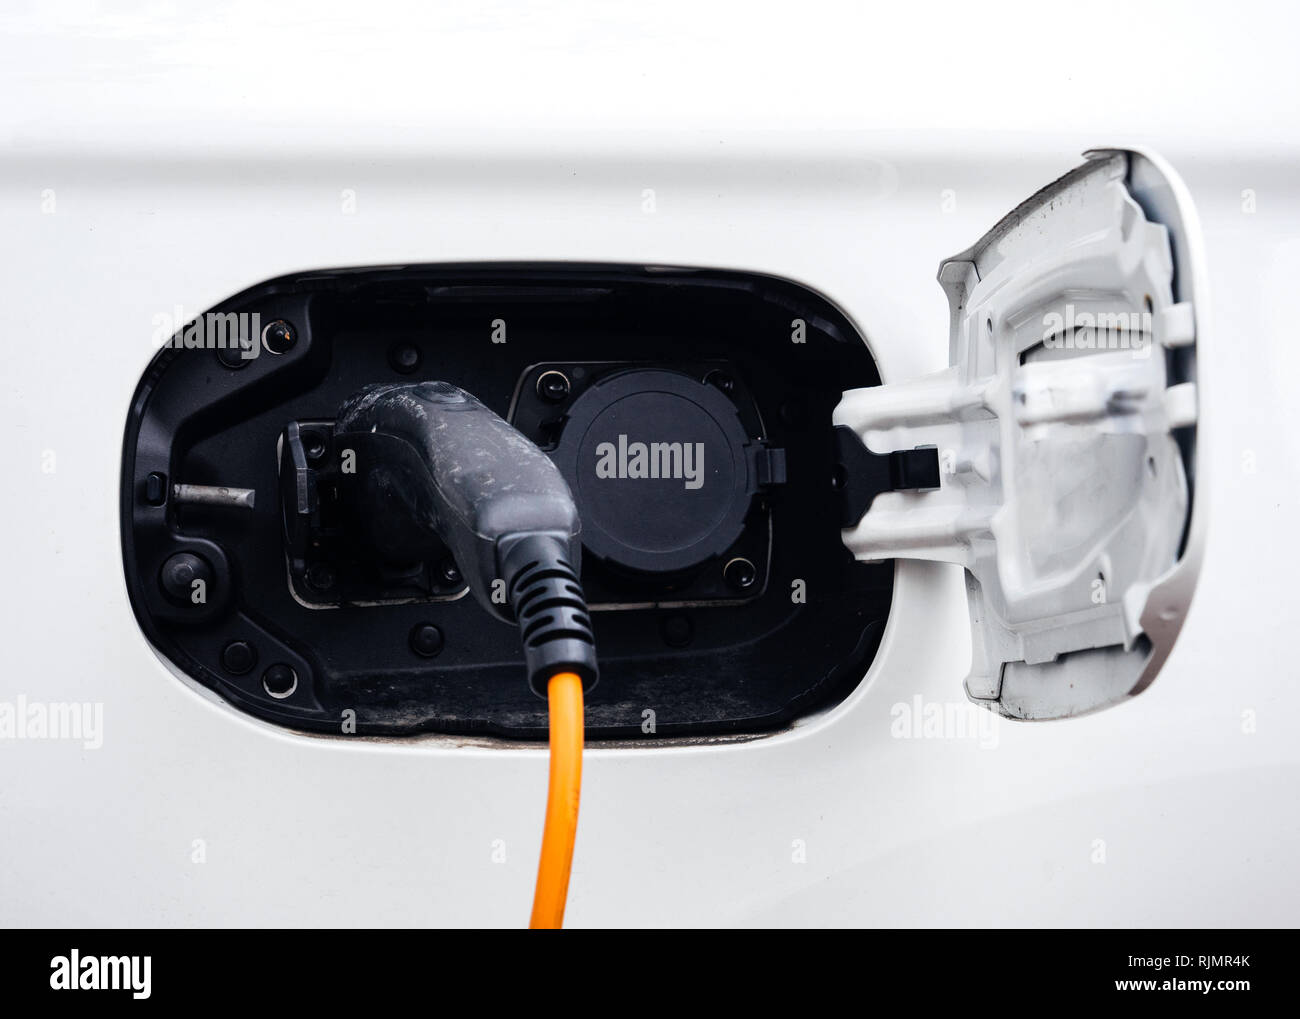 Yellow and black cable of electric car charger being plugged in at the parking - modern ecological clean environment car - Stock Image